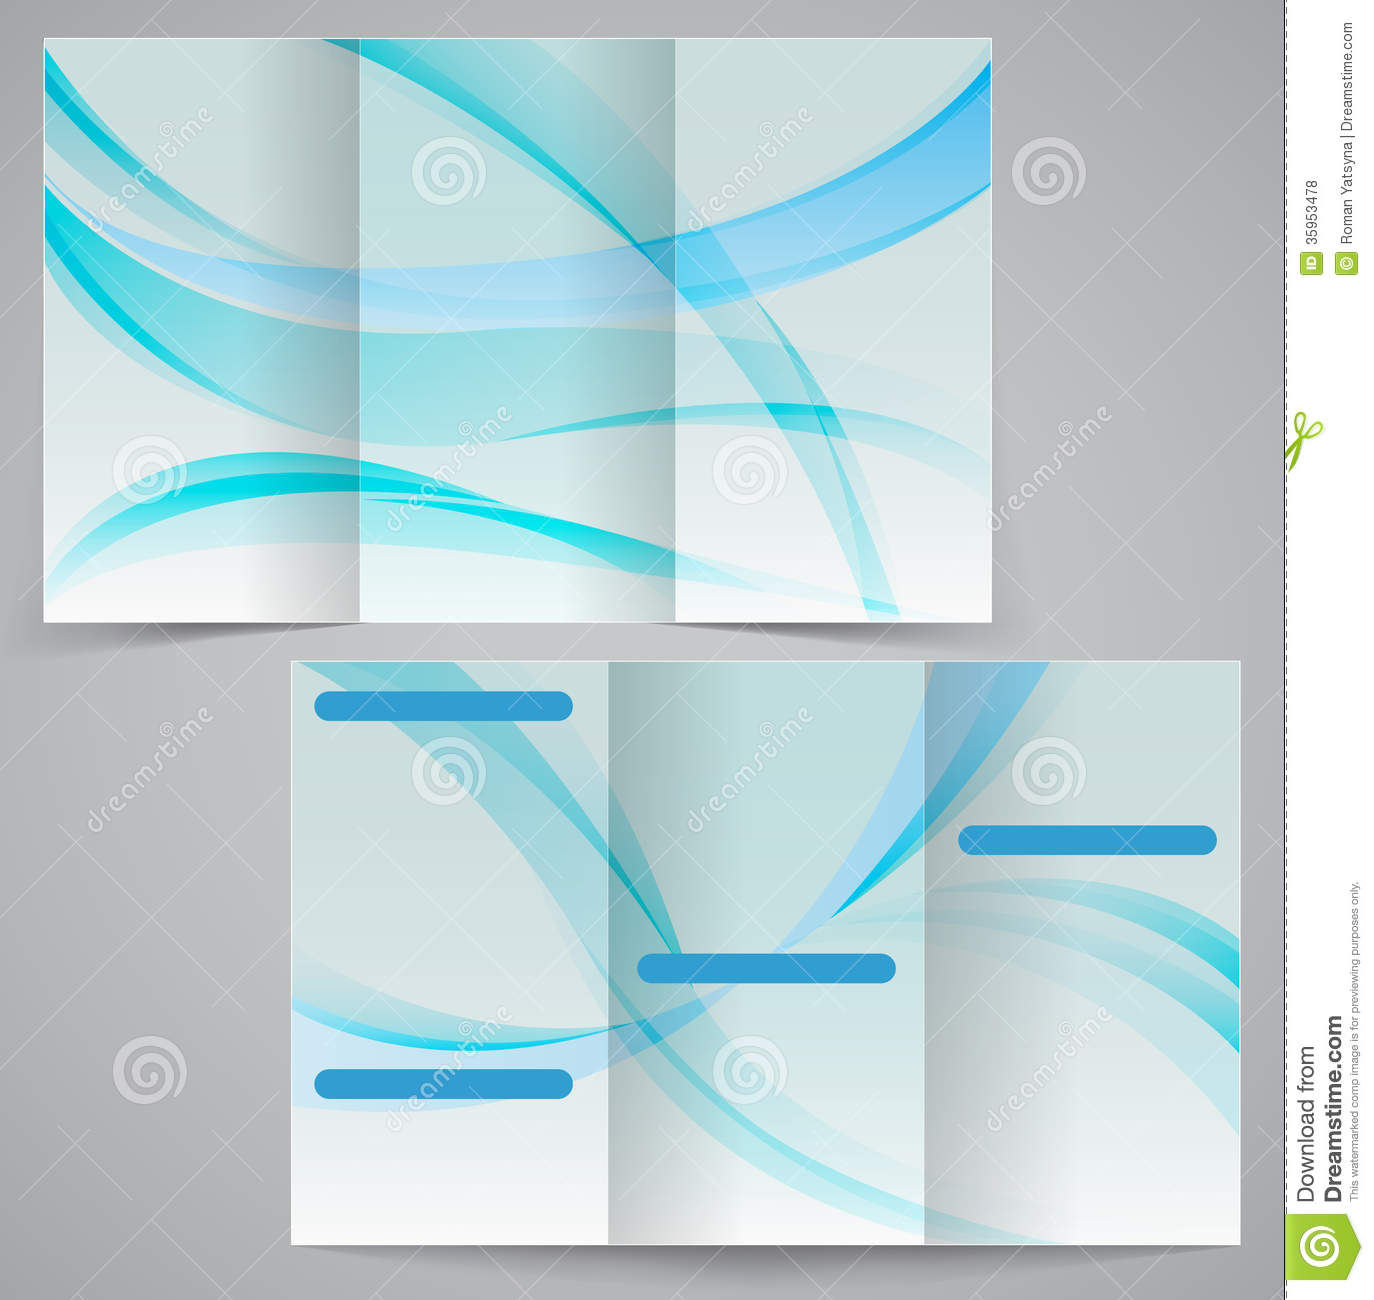 Free brochure templates goodshows for Blank tri fold brochure template free download